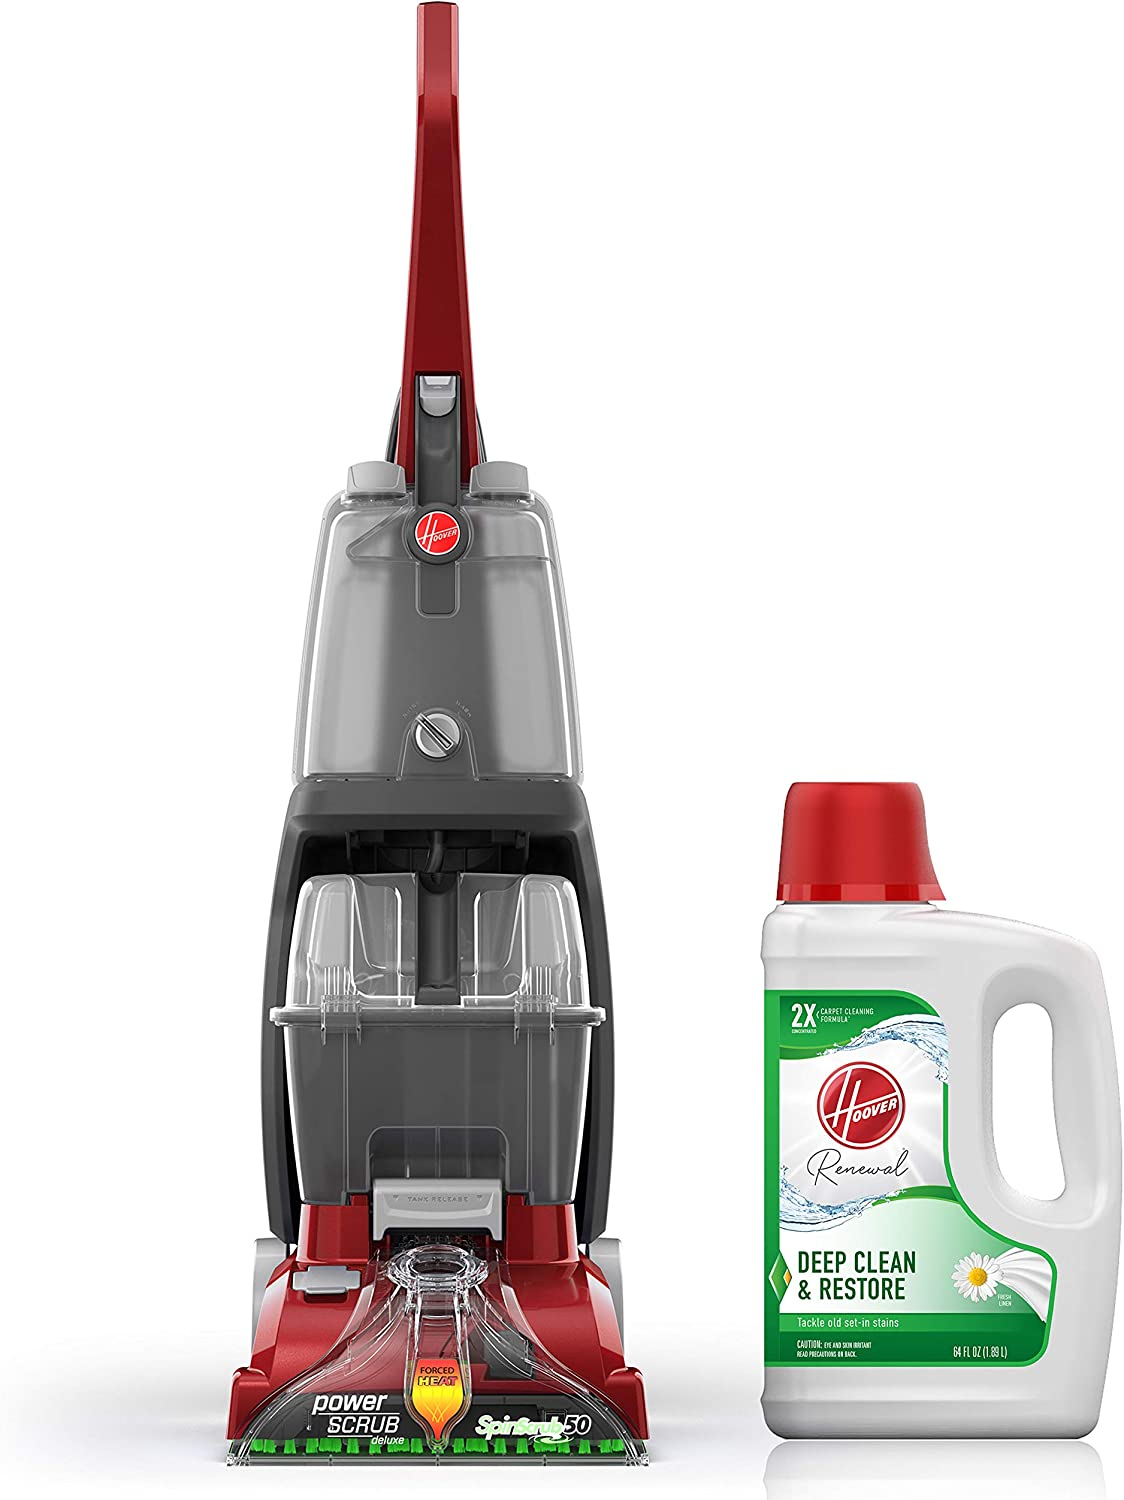 Hoover Power Scrub Deluxe Carpet Washer with Renewal Carpet Cleaning Solution (64 oz), FH50150, AH30924